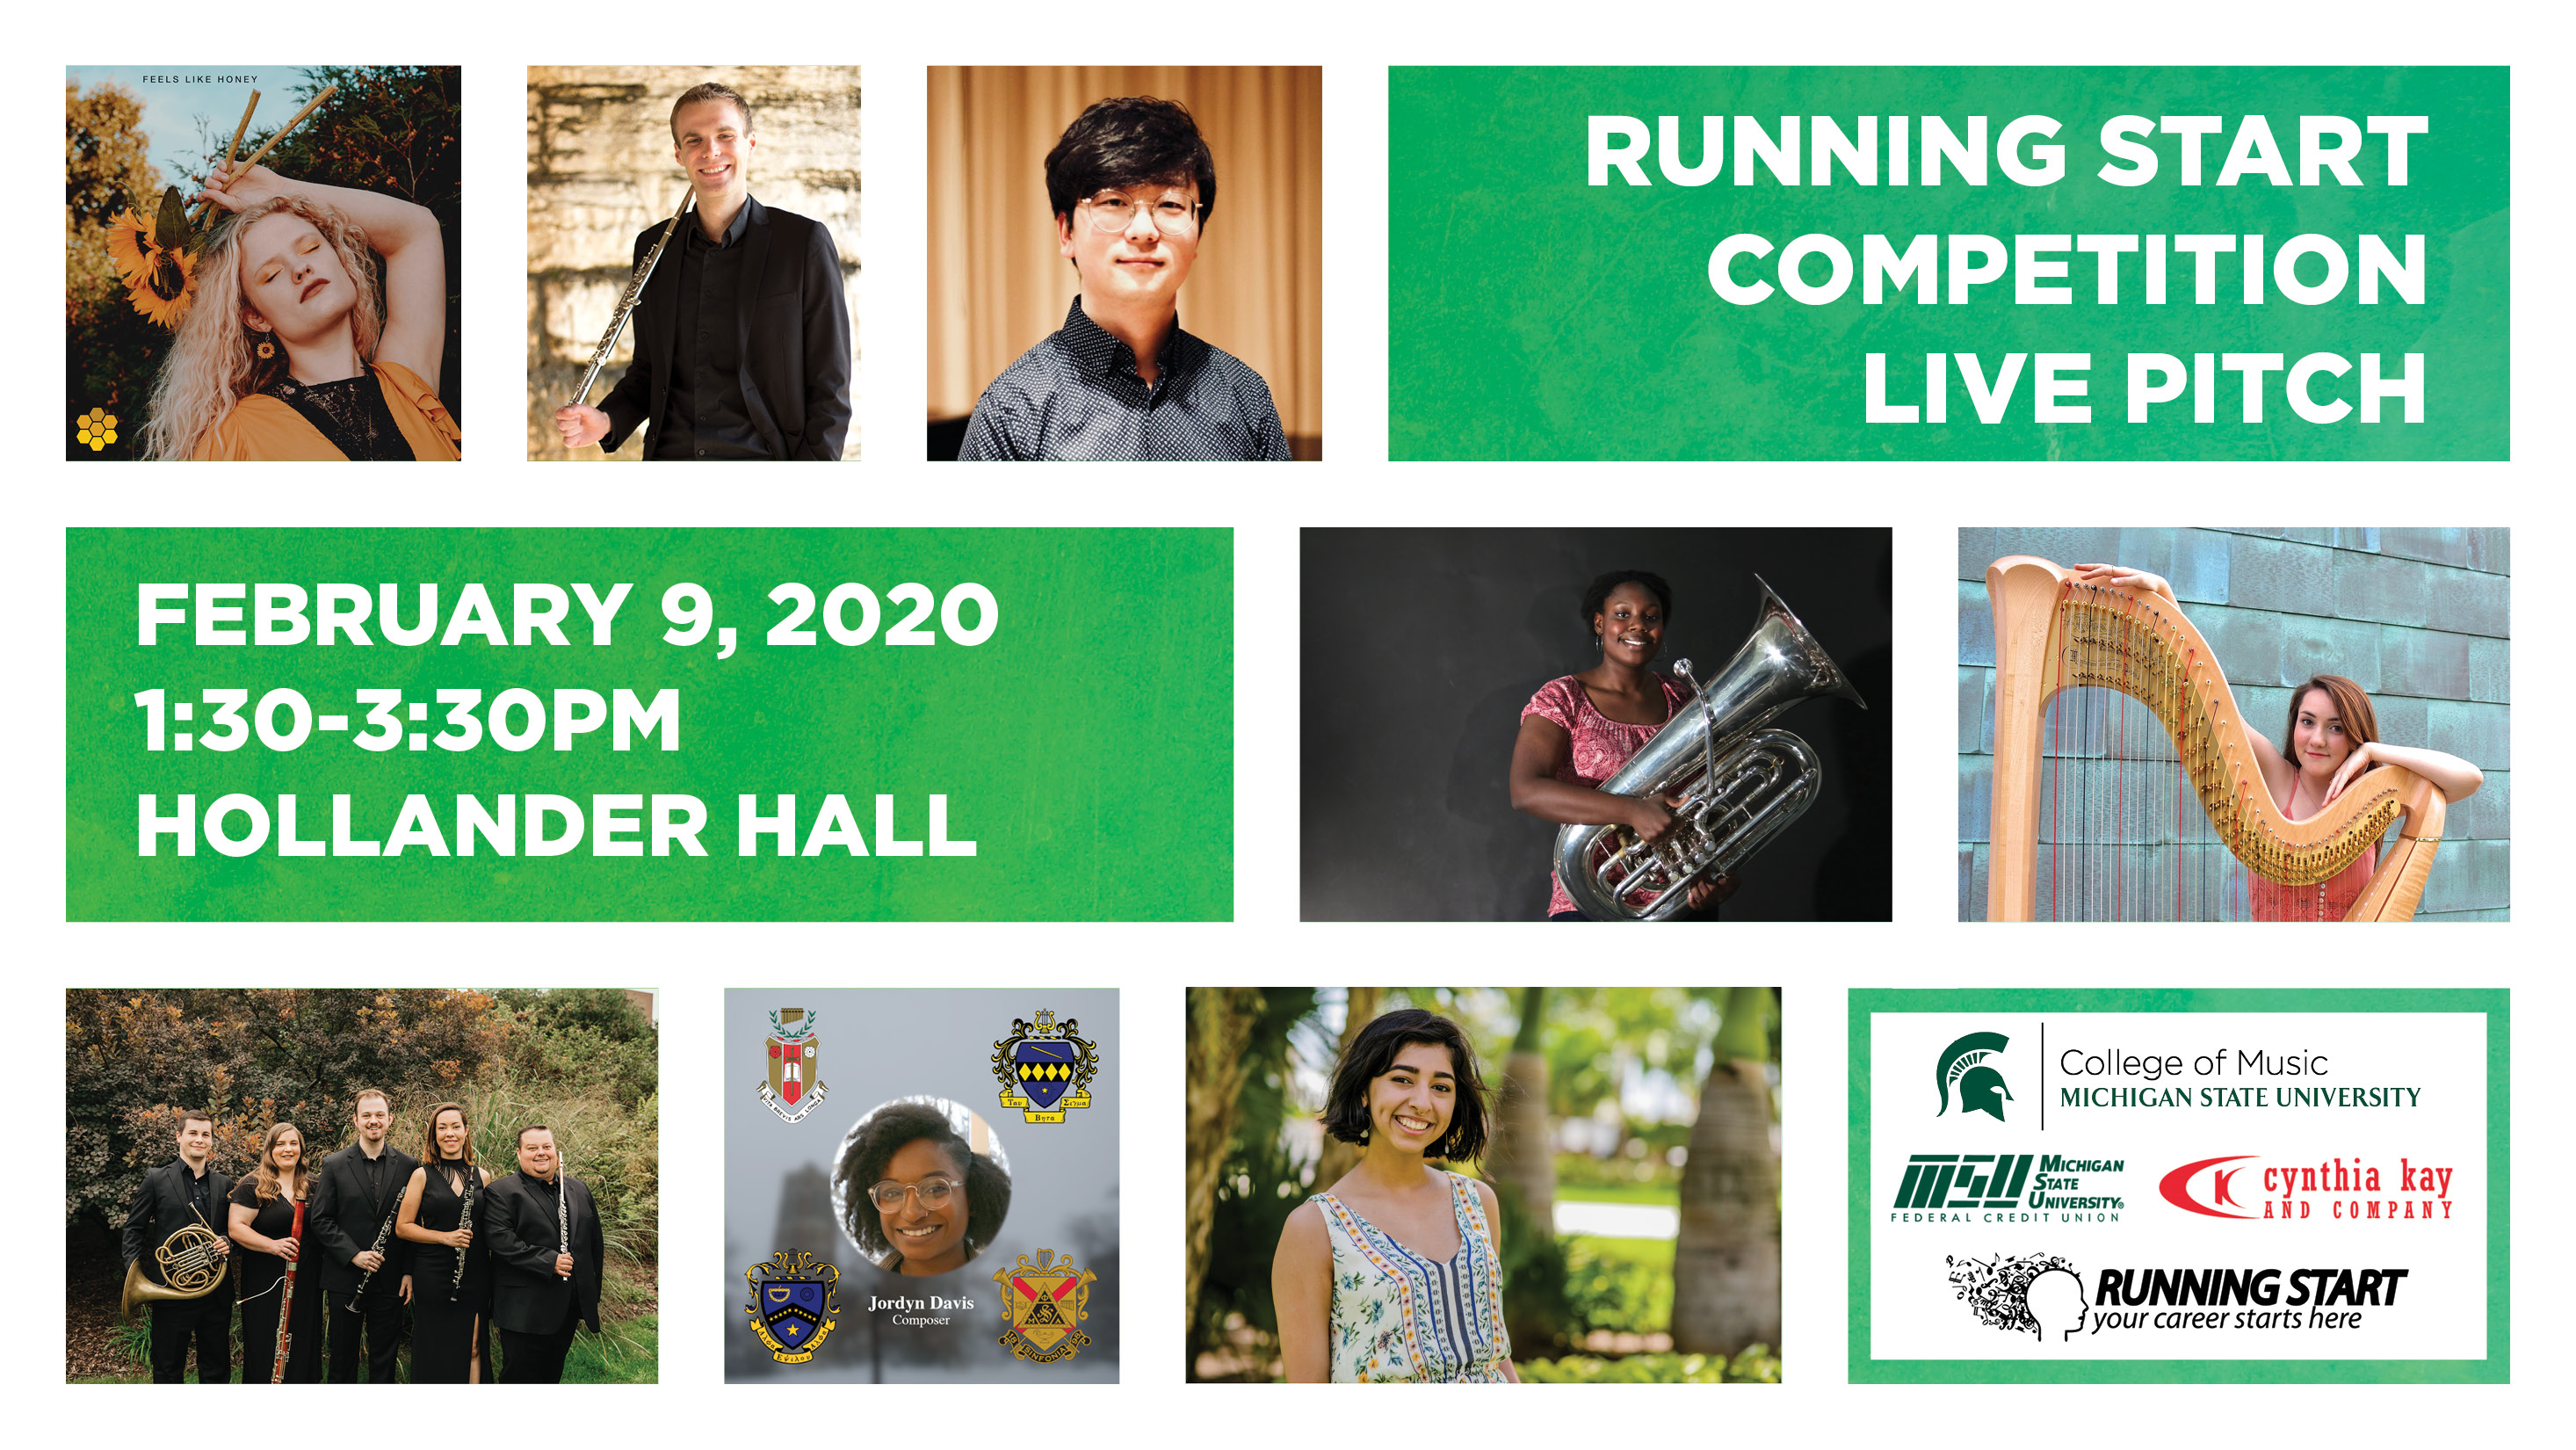 Running Start Competition, February 2020 image